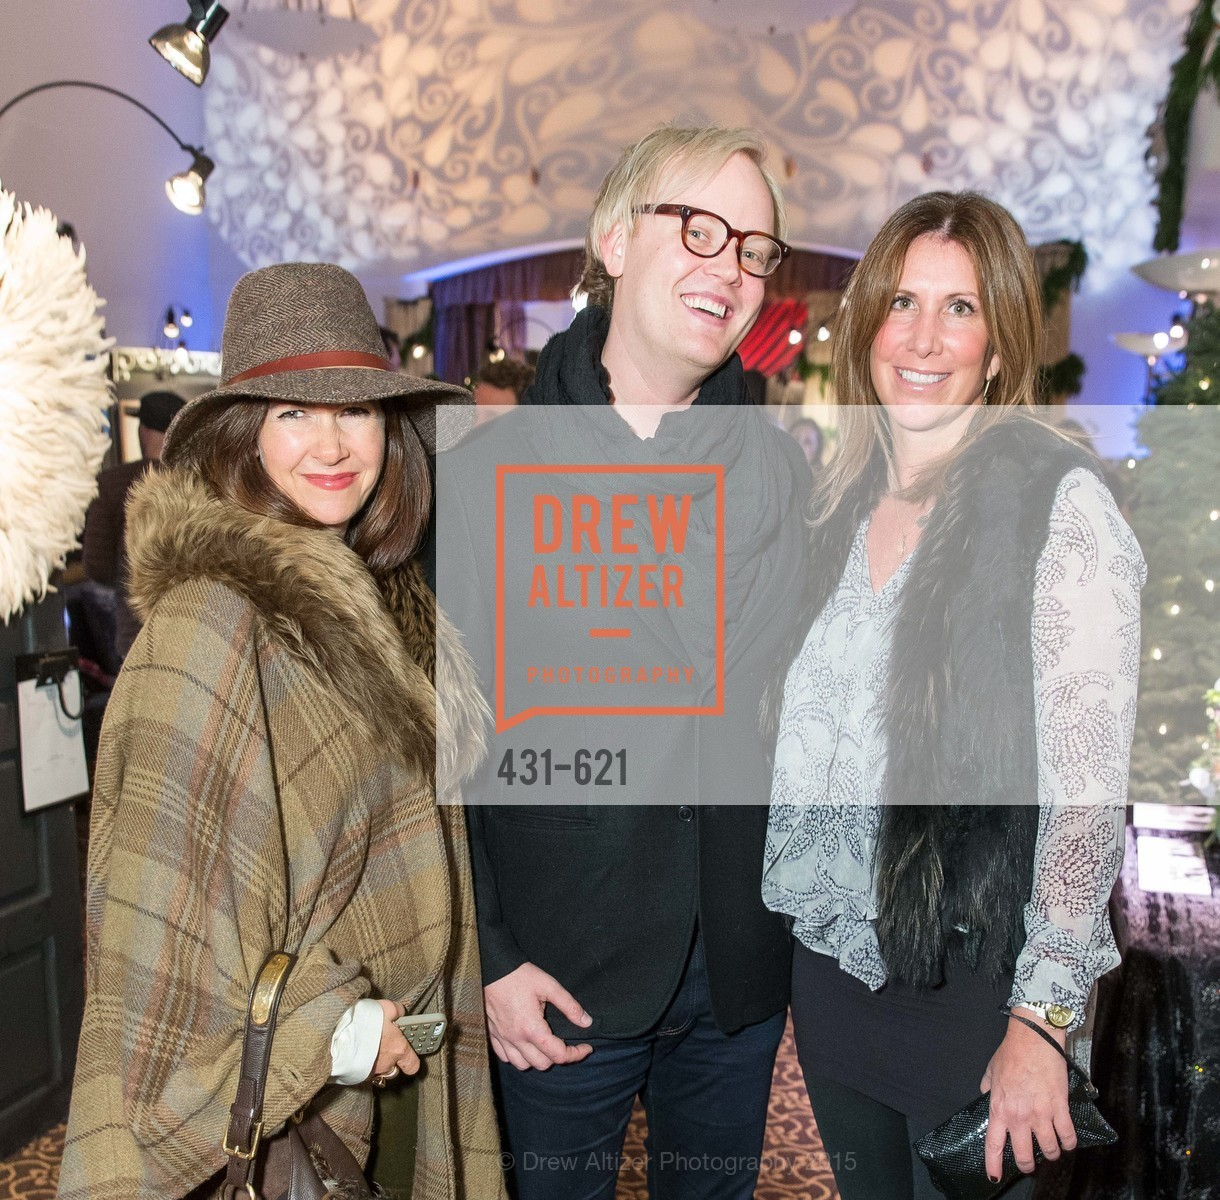 Laurie Landsness, Grant Gibson, Traci Rock, Children of Shelters' Jingle and Mingle, Golden Gate Club. 135 Fisher Loop, December 3rd, 2015,Drew Altizer, Drew Altizer Photography, full-service agency, private events, San Francisco photographer, photographer california